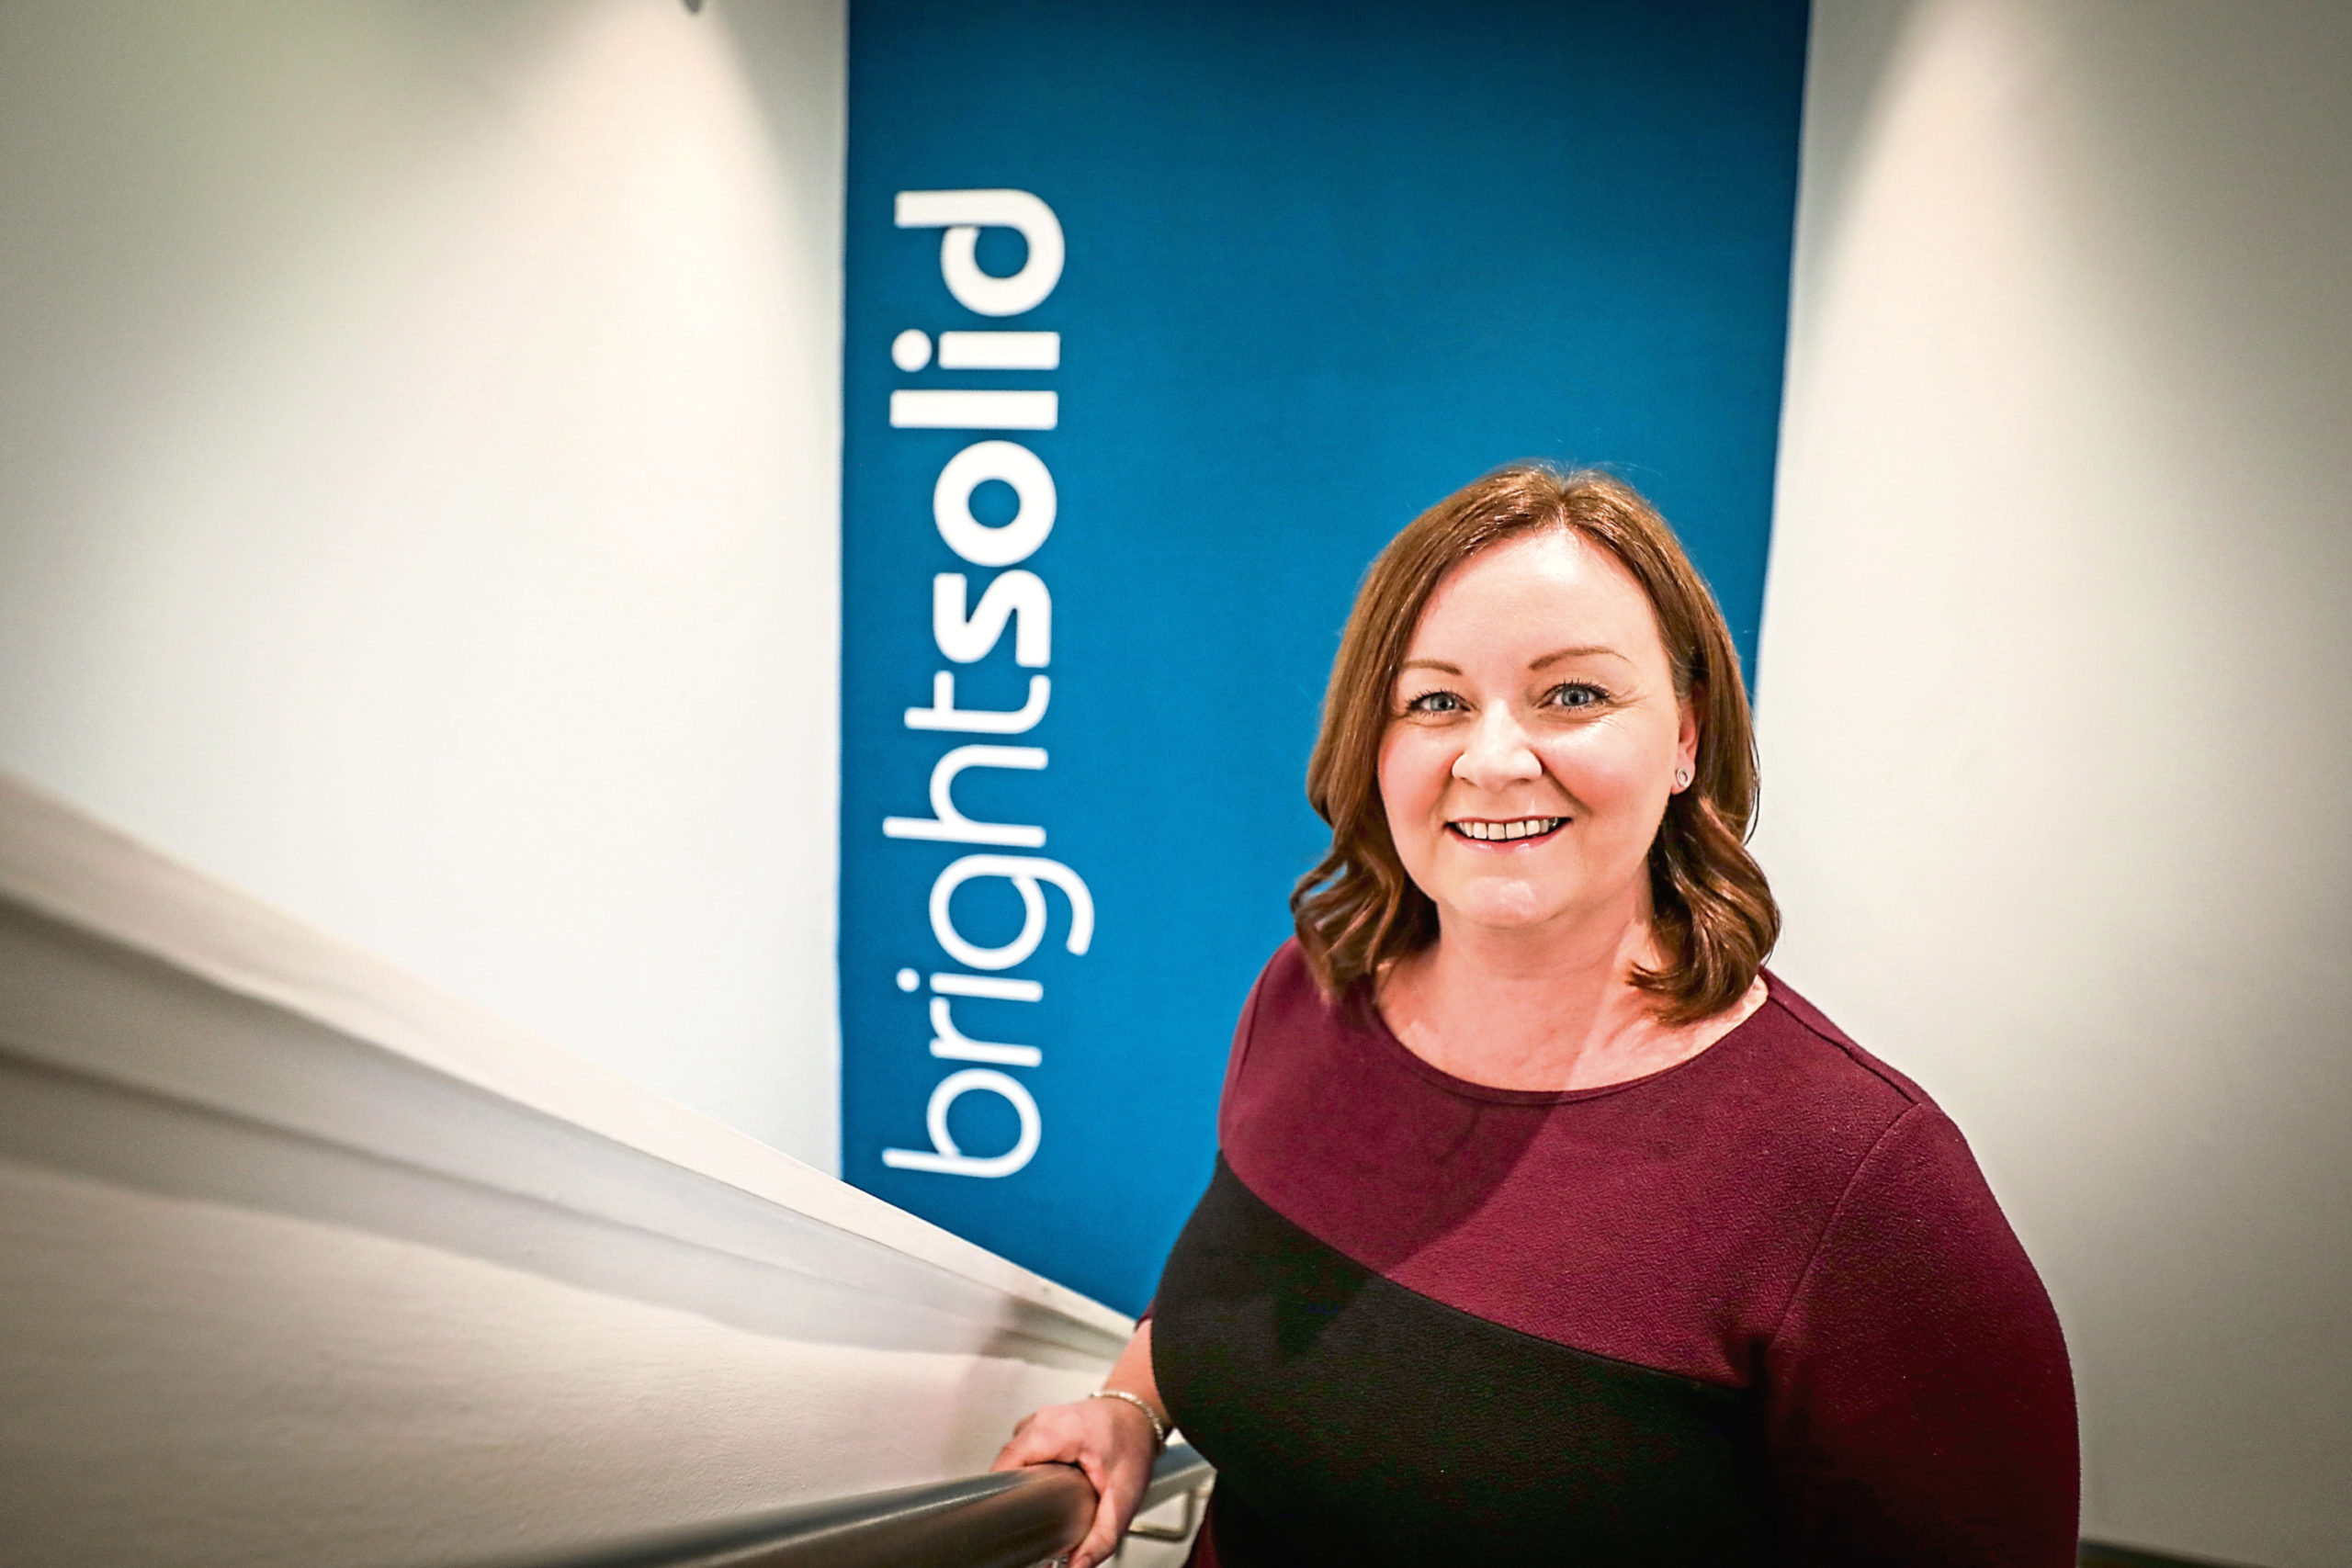 Elaine Maddison, chief executive of Brightsolid, is among the speakers.